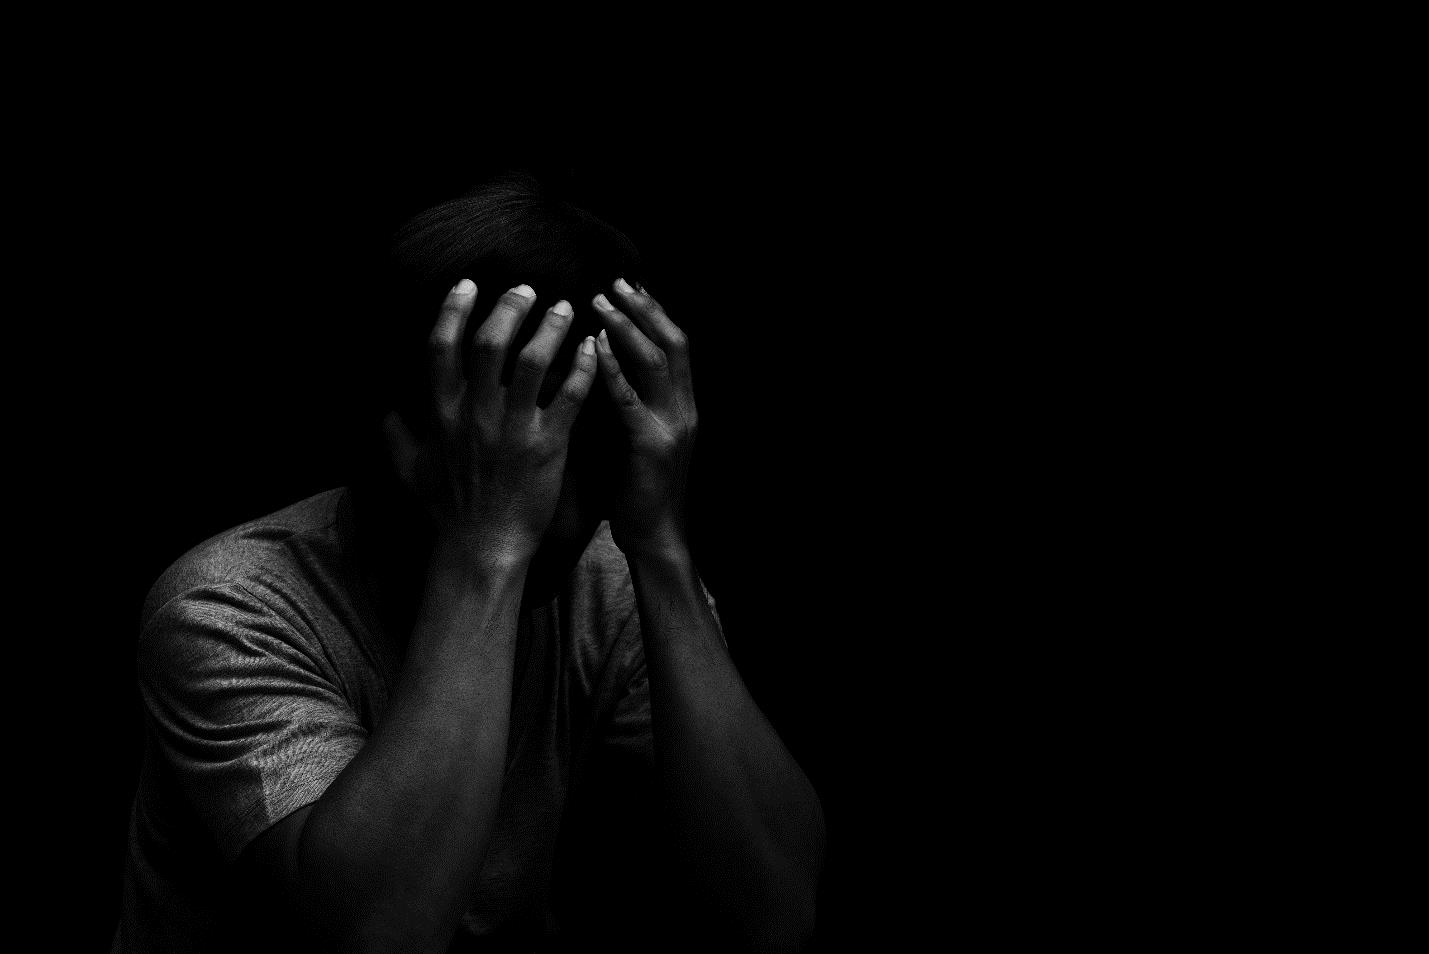 A person, depressed and exhausted, buried his face in his hands.